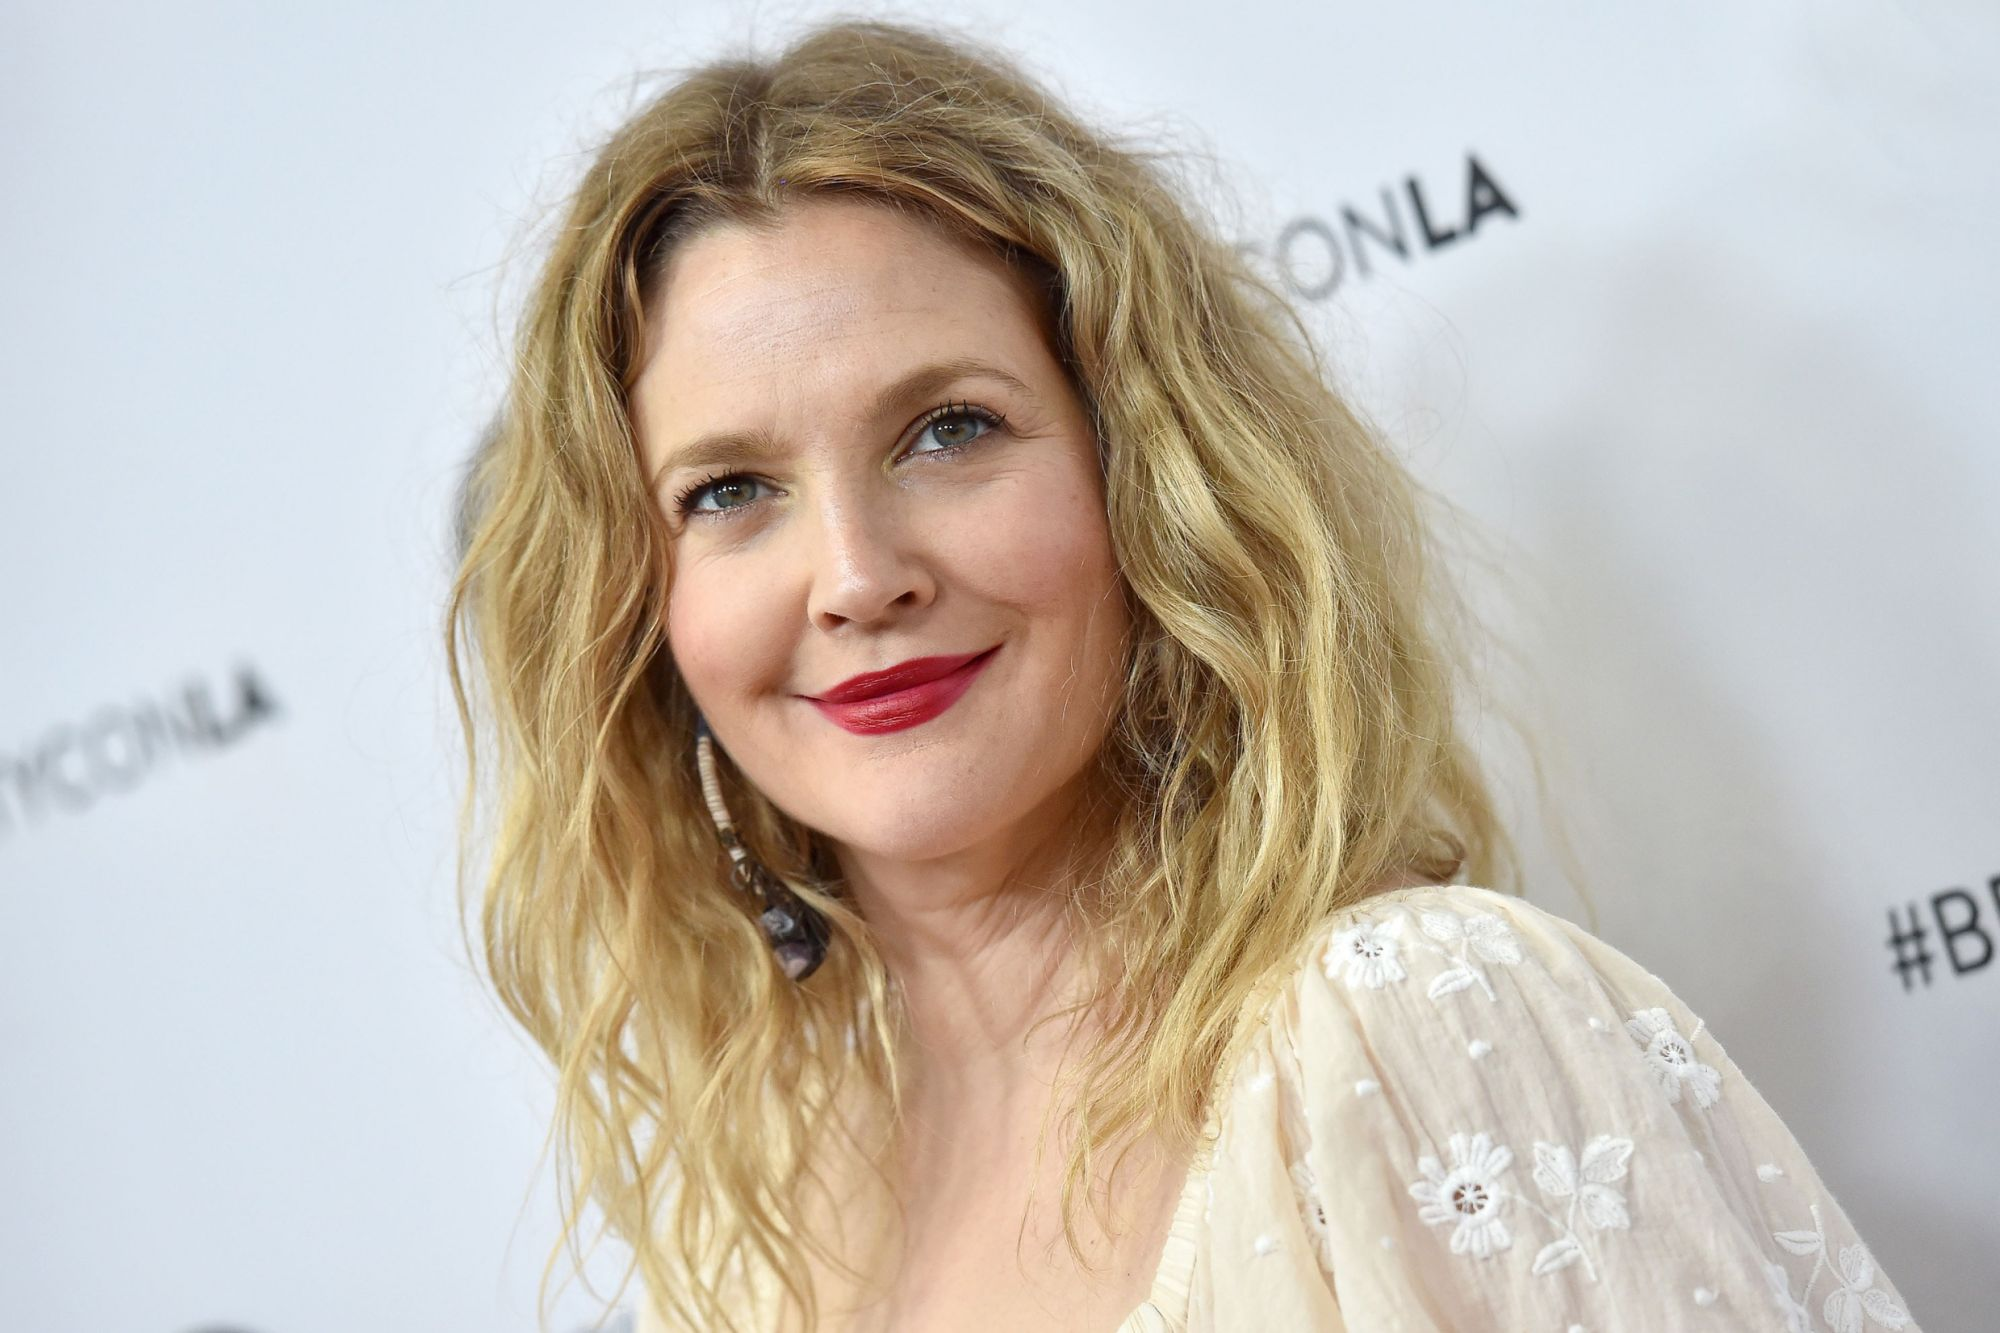 3 Things Drew Barrymore Taught Me About Entrepreneurship